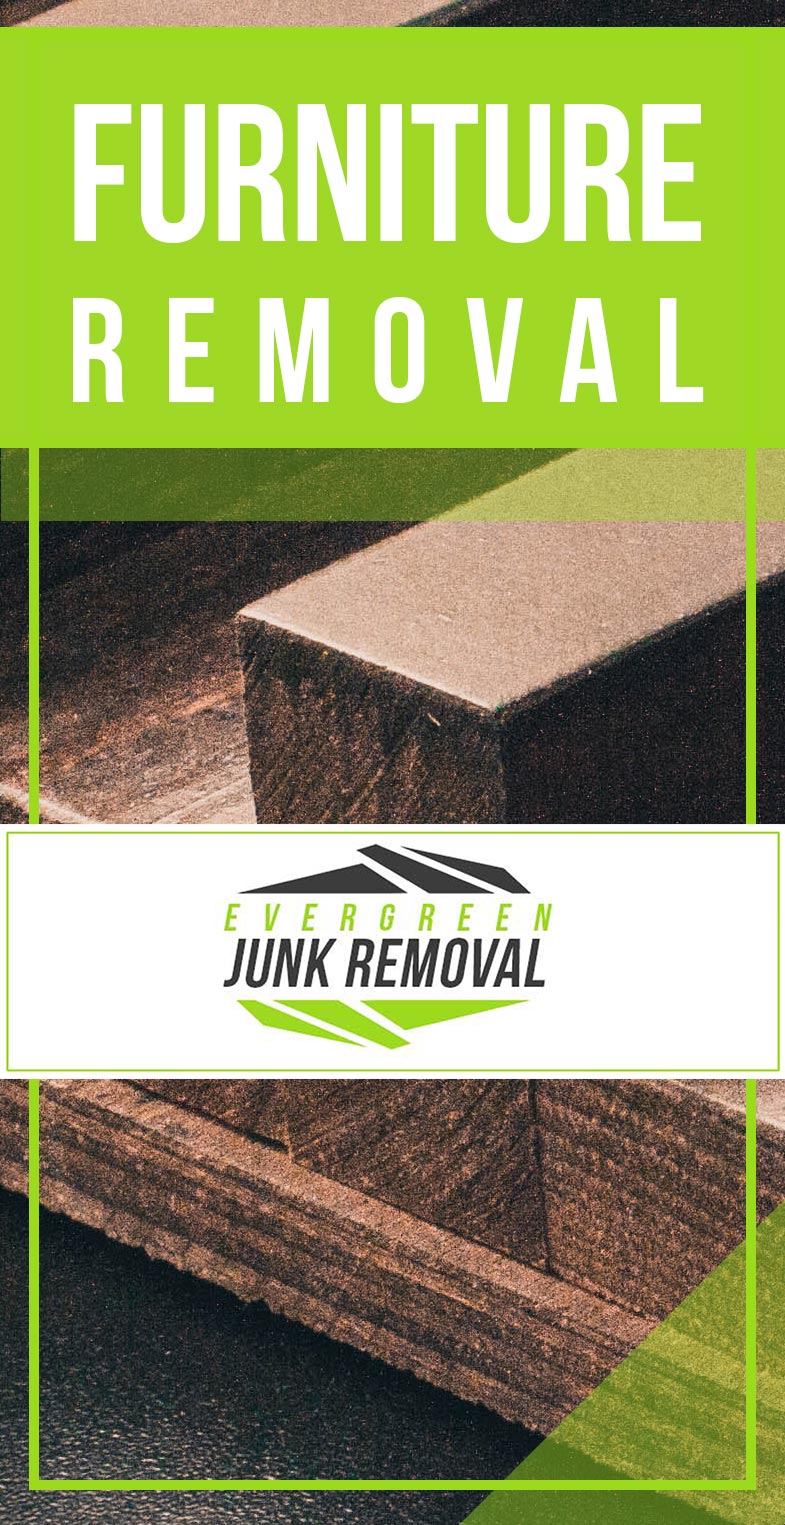 Seabrook Furniture Removal